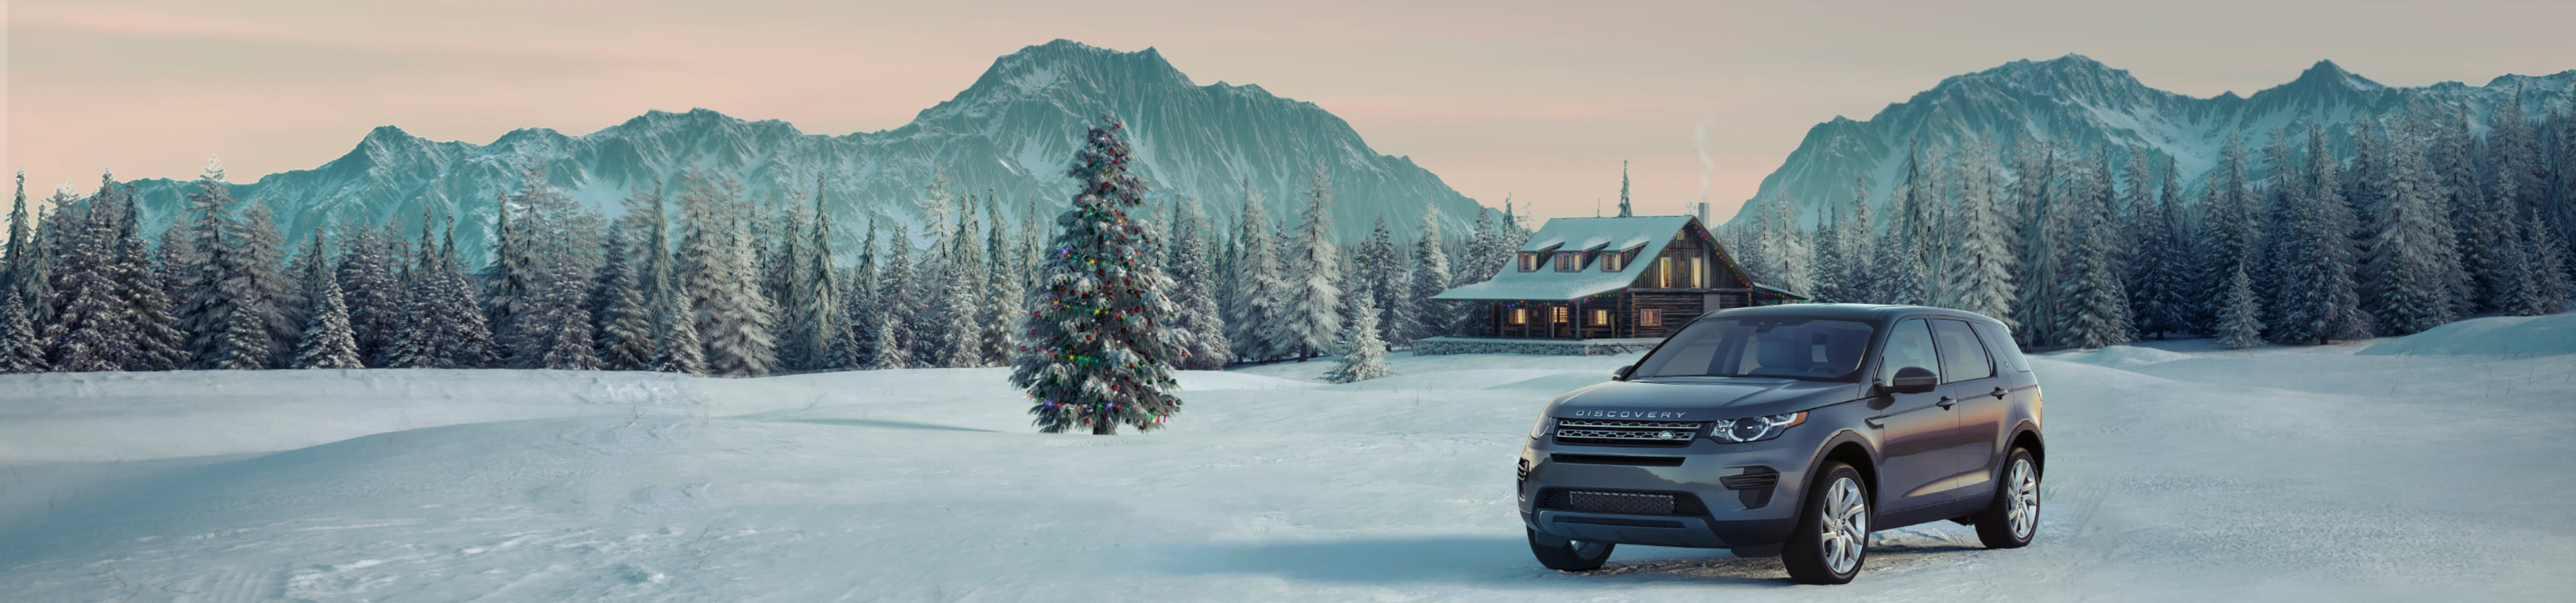 Buy or Lease Land Rover Discovery Sport near Boston Brookline